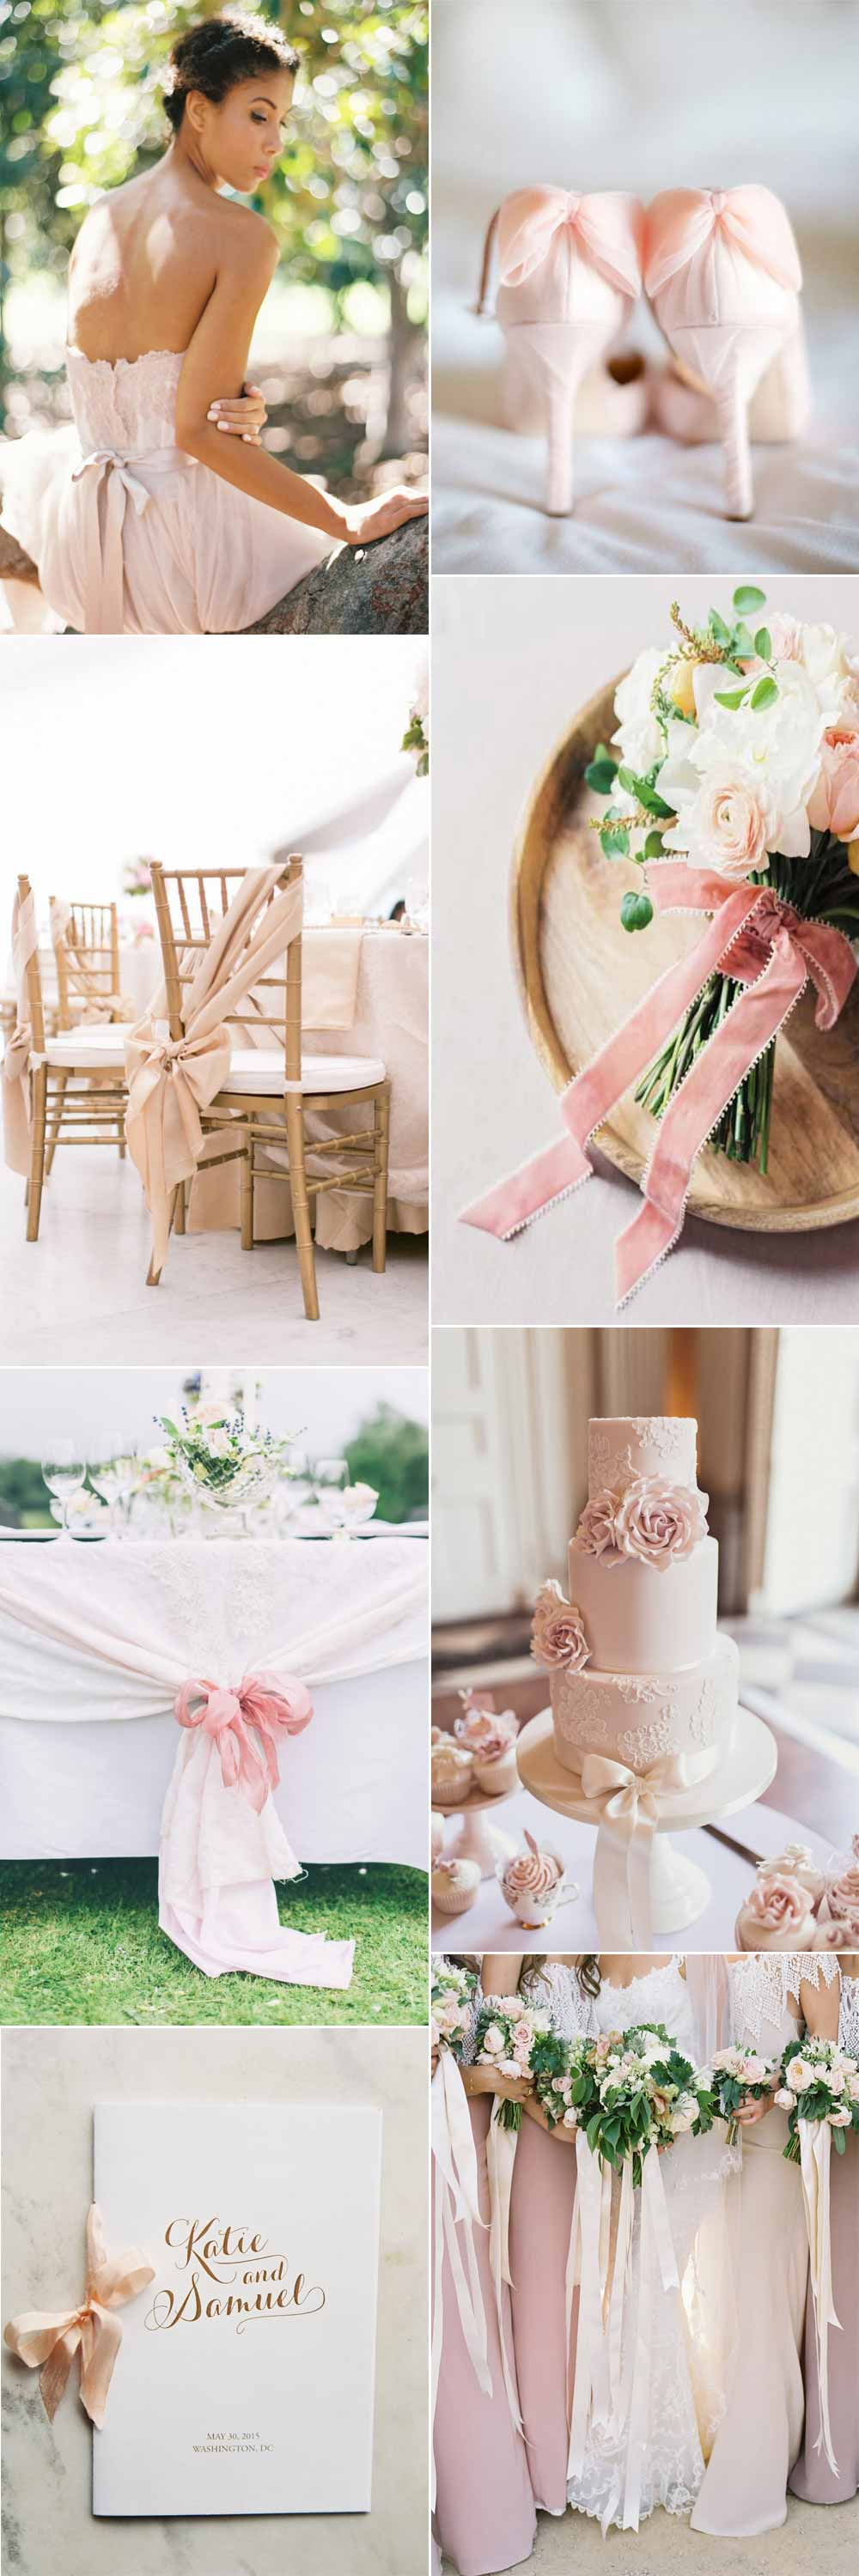 Blush and bow wedding ideas